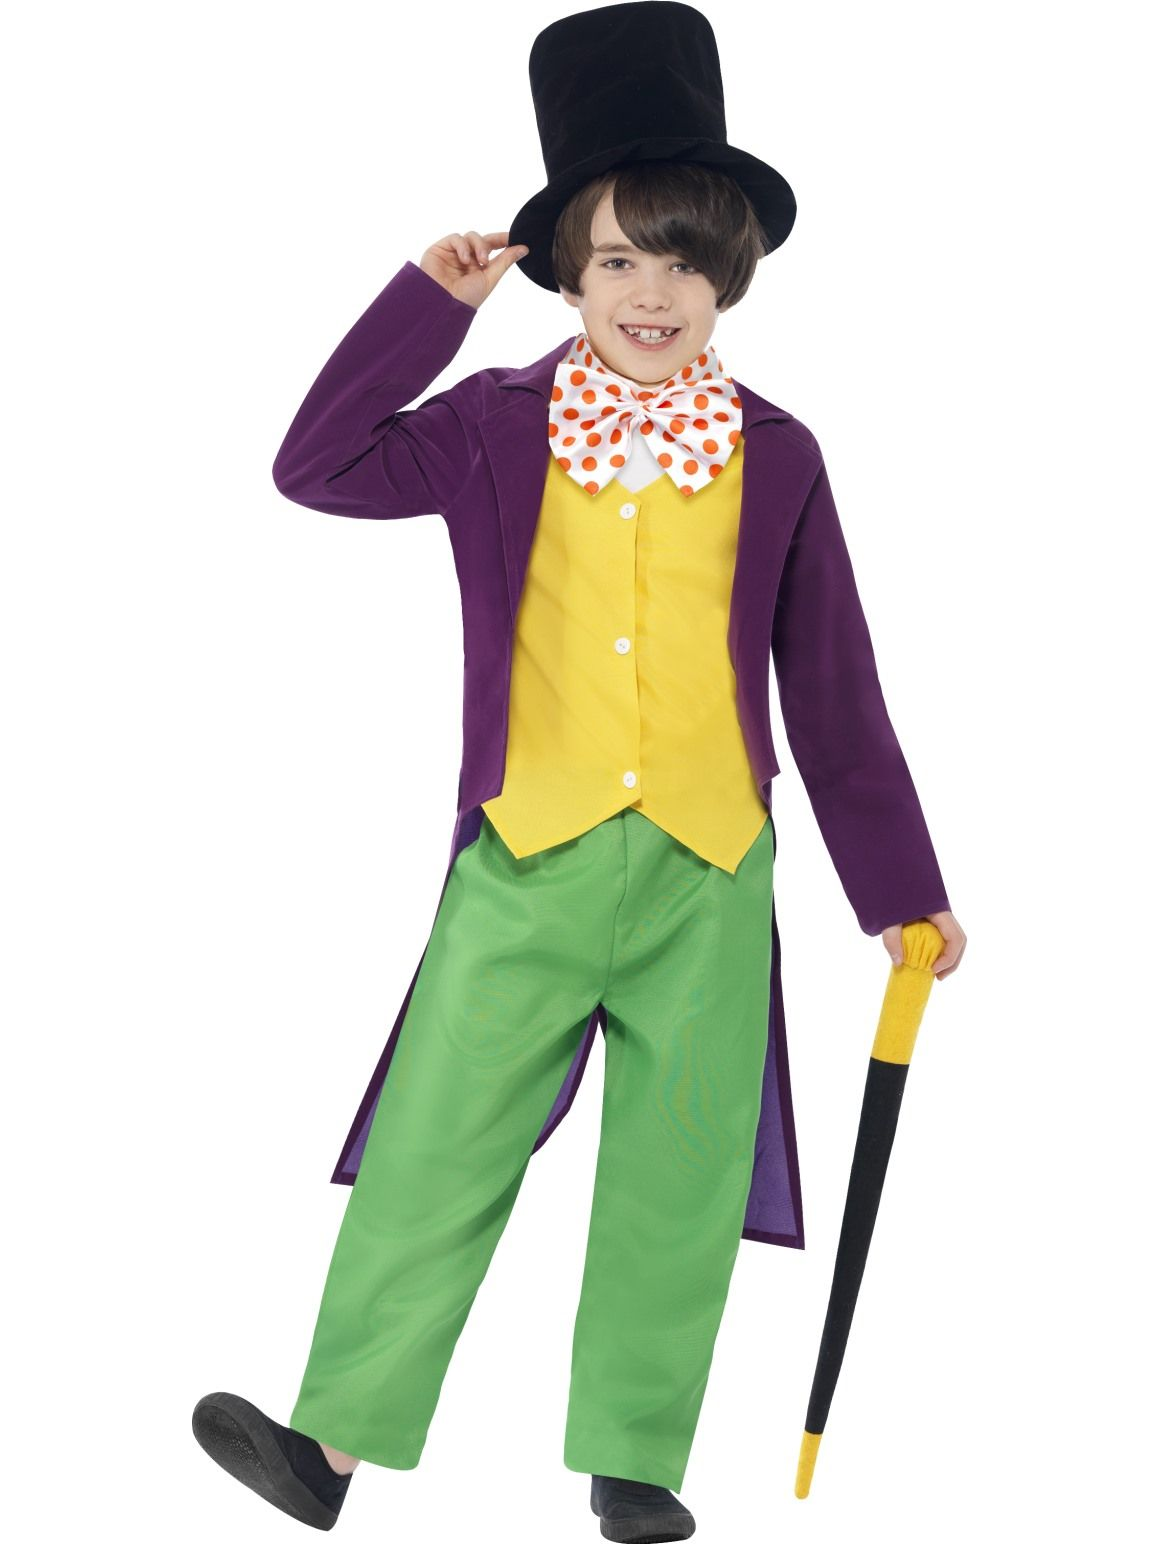 Willy Wonka Roald Dahl Child Costume  - Buy